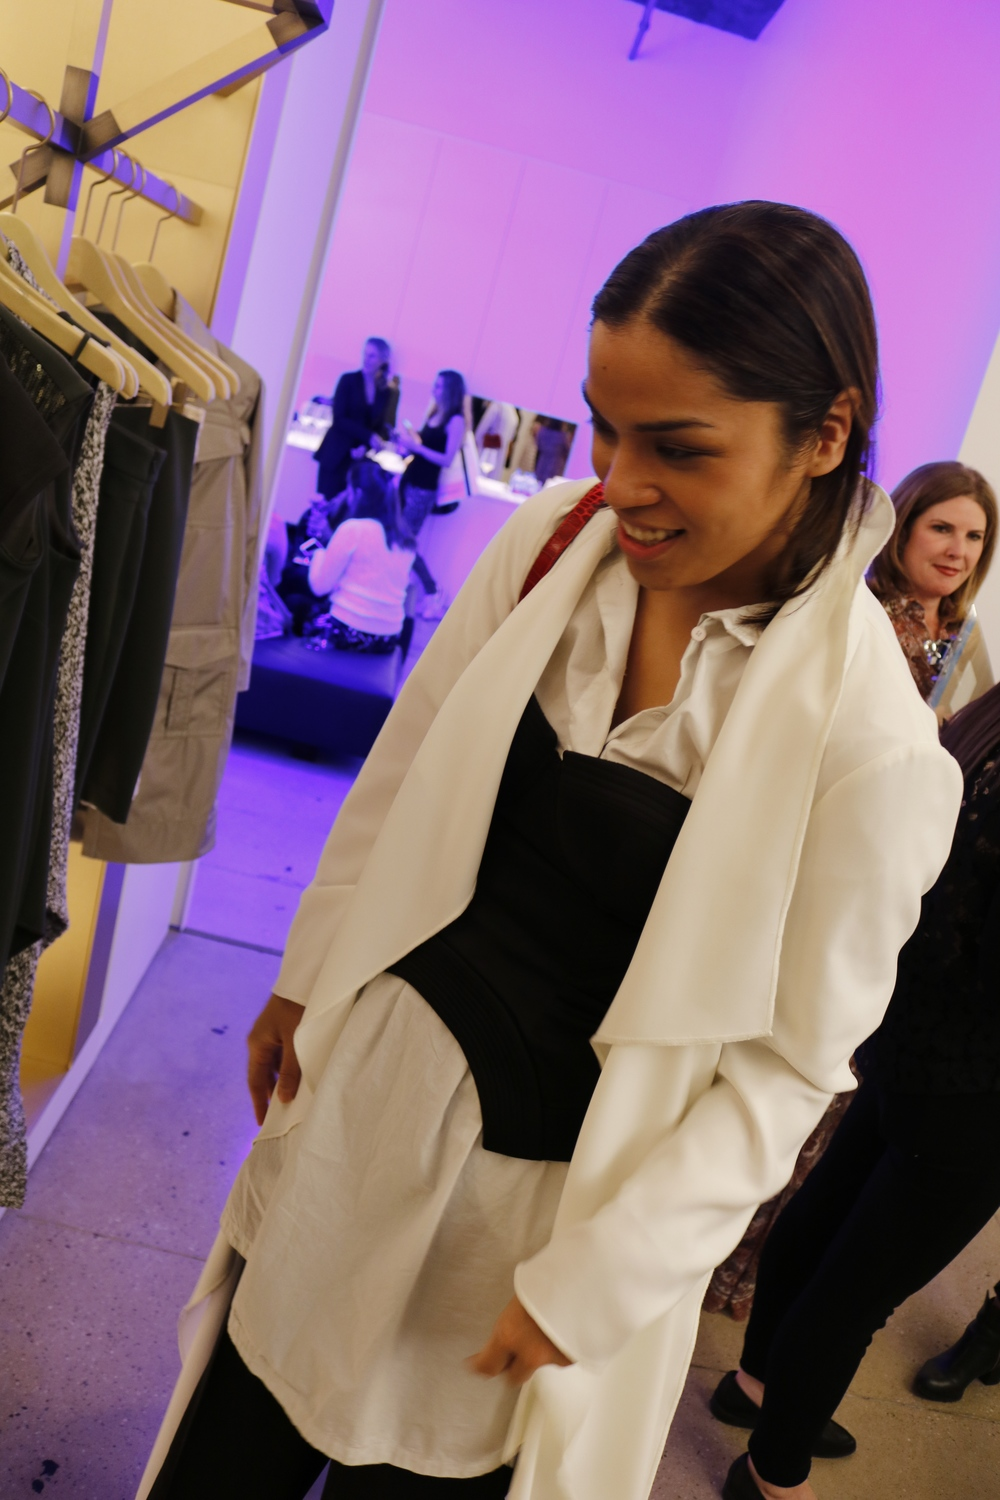 It involved a lot of events where Carla was just asked to attend fashion previews and to try the new collections. I just watched from the side.